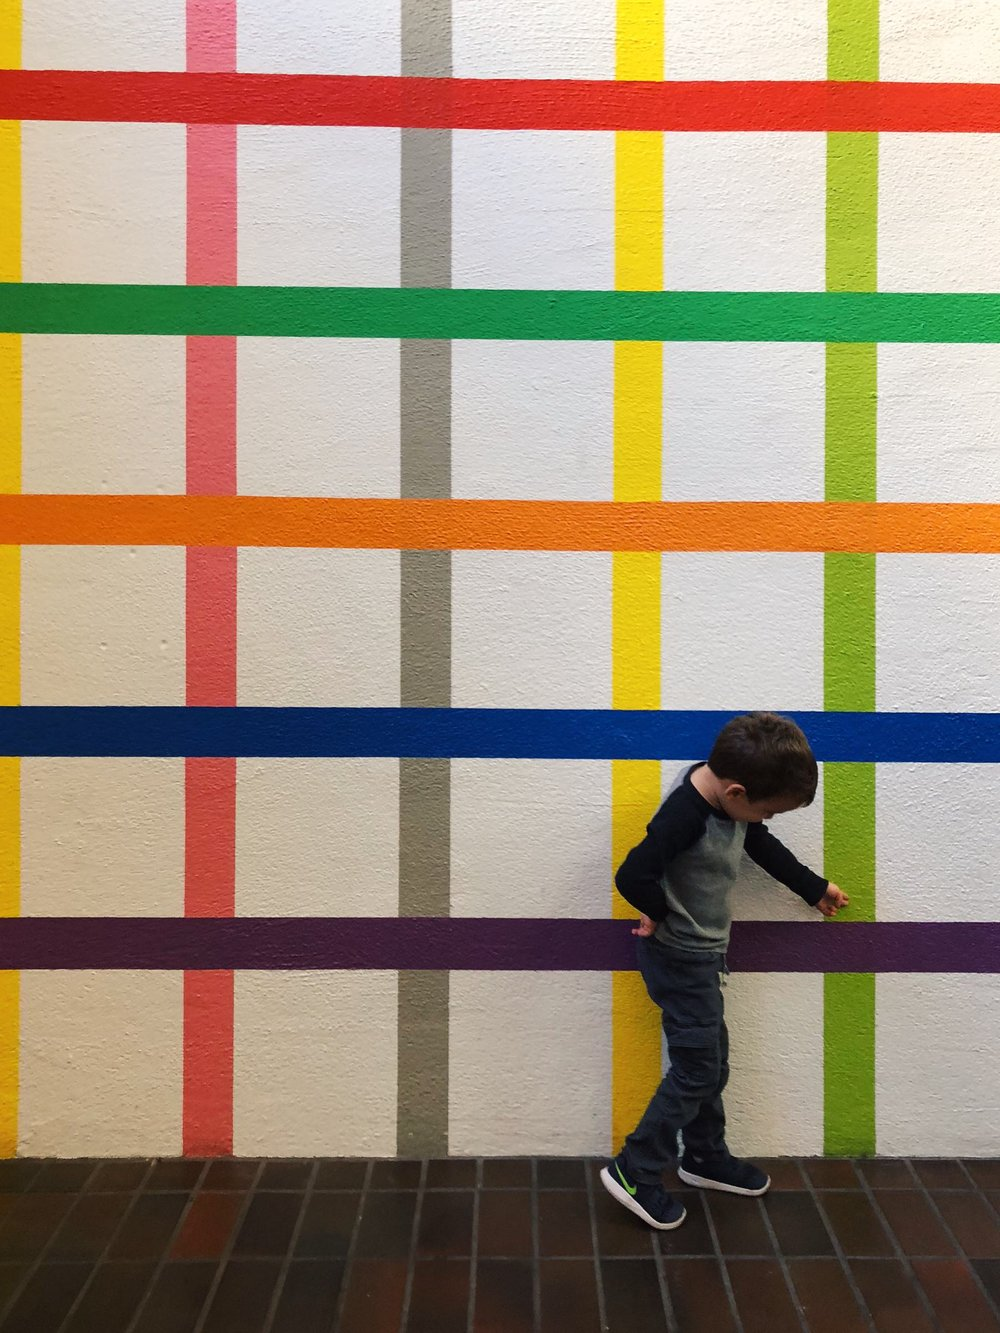 the-curiosity-project-blog-sf-color-factory-visit-with-kids-15.jpg